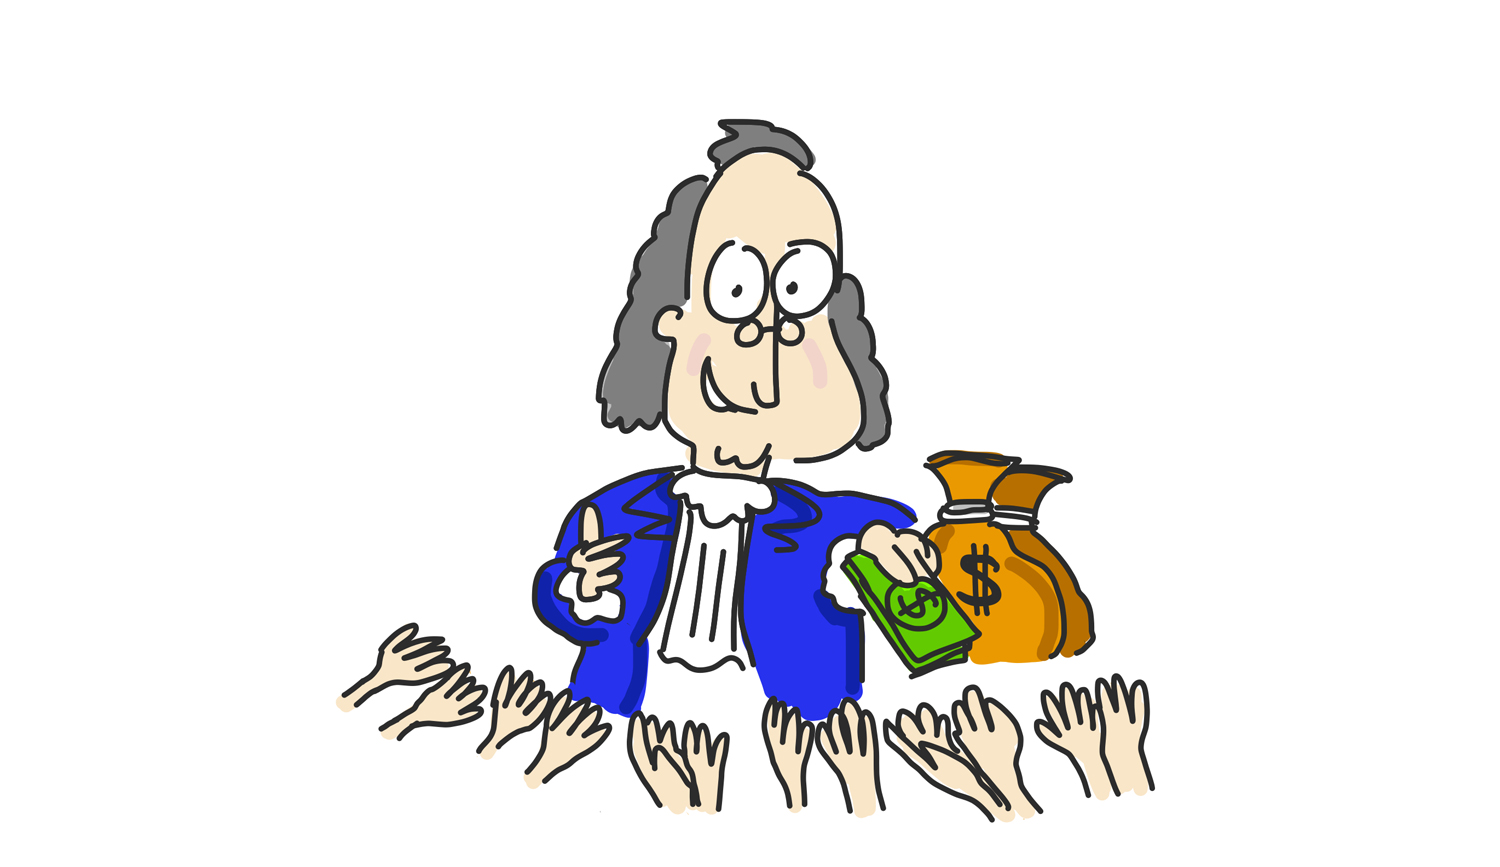 Benjamin Franklin as a philanthropist